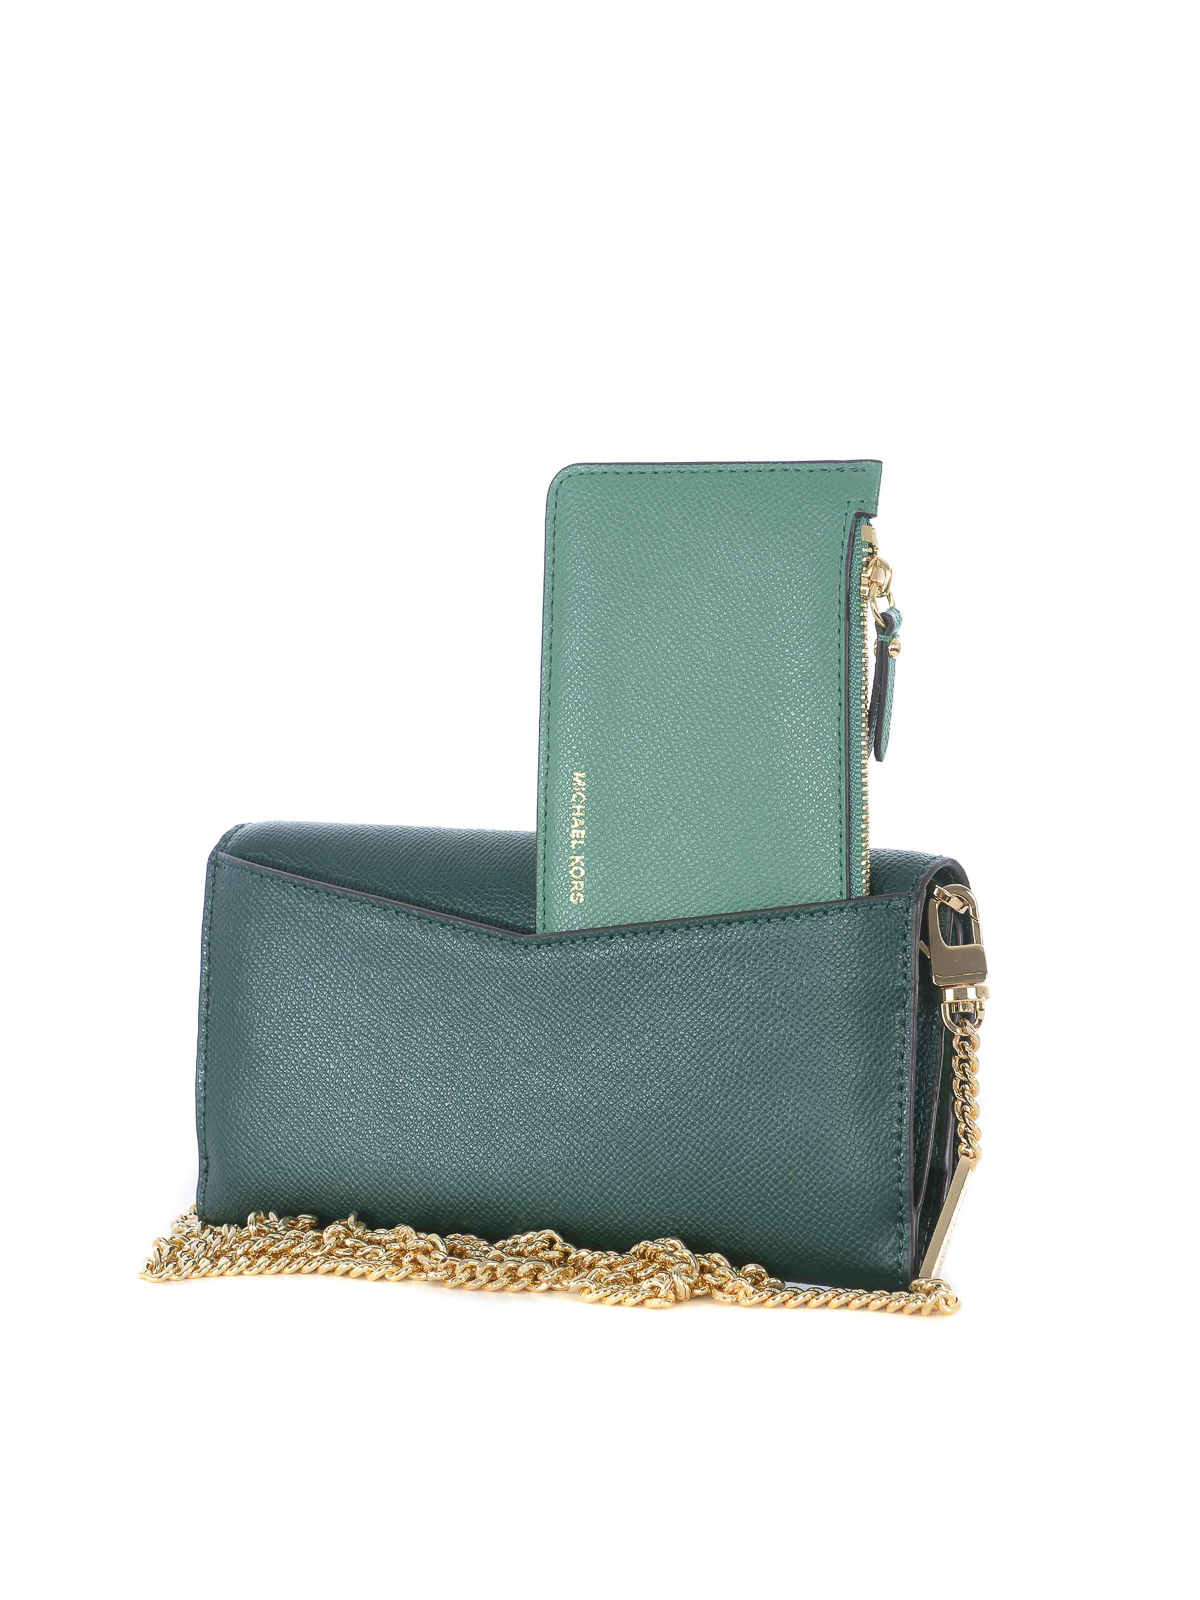 050532ad927d74 iKRIX MICHAEL KORS: wallets & purses - Bifold wallet with removable chain  strap